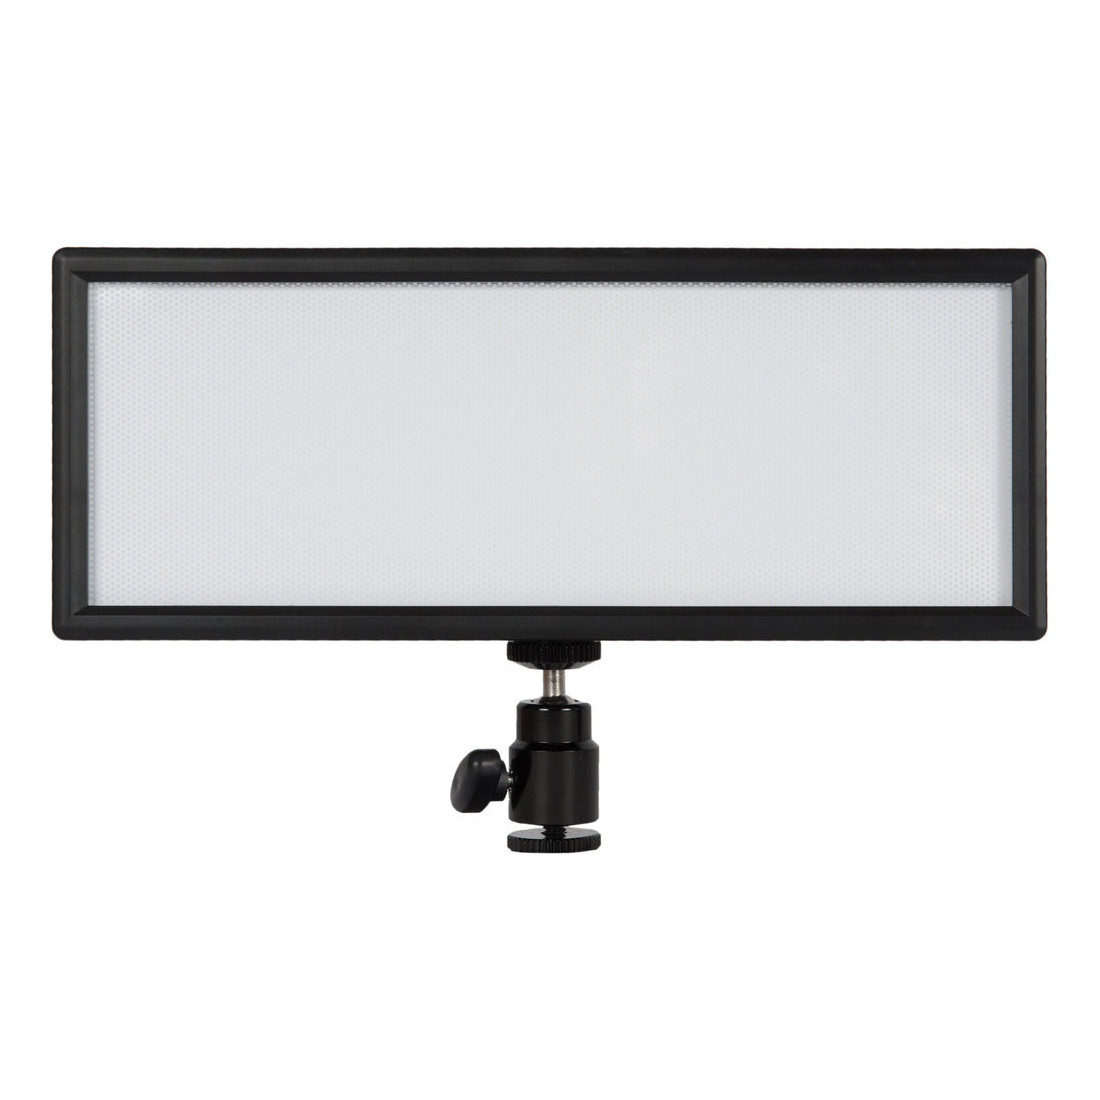 Afbeelding van AVtec LedPAD X63 Bi color Honeycomb Soft LED Light